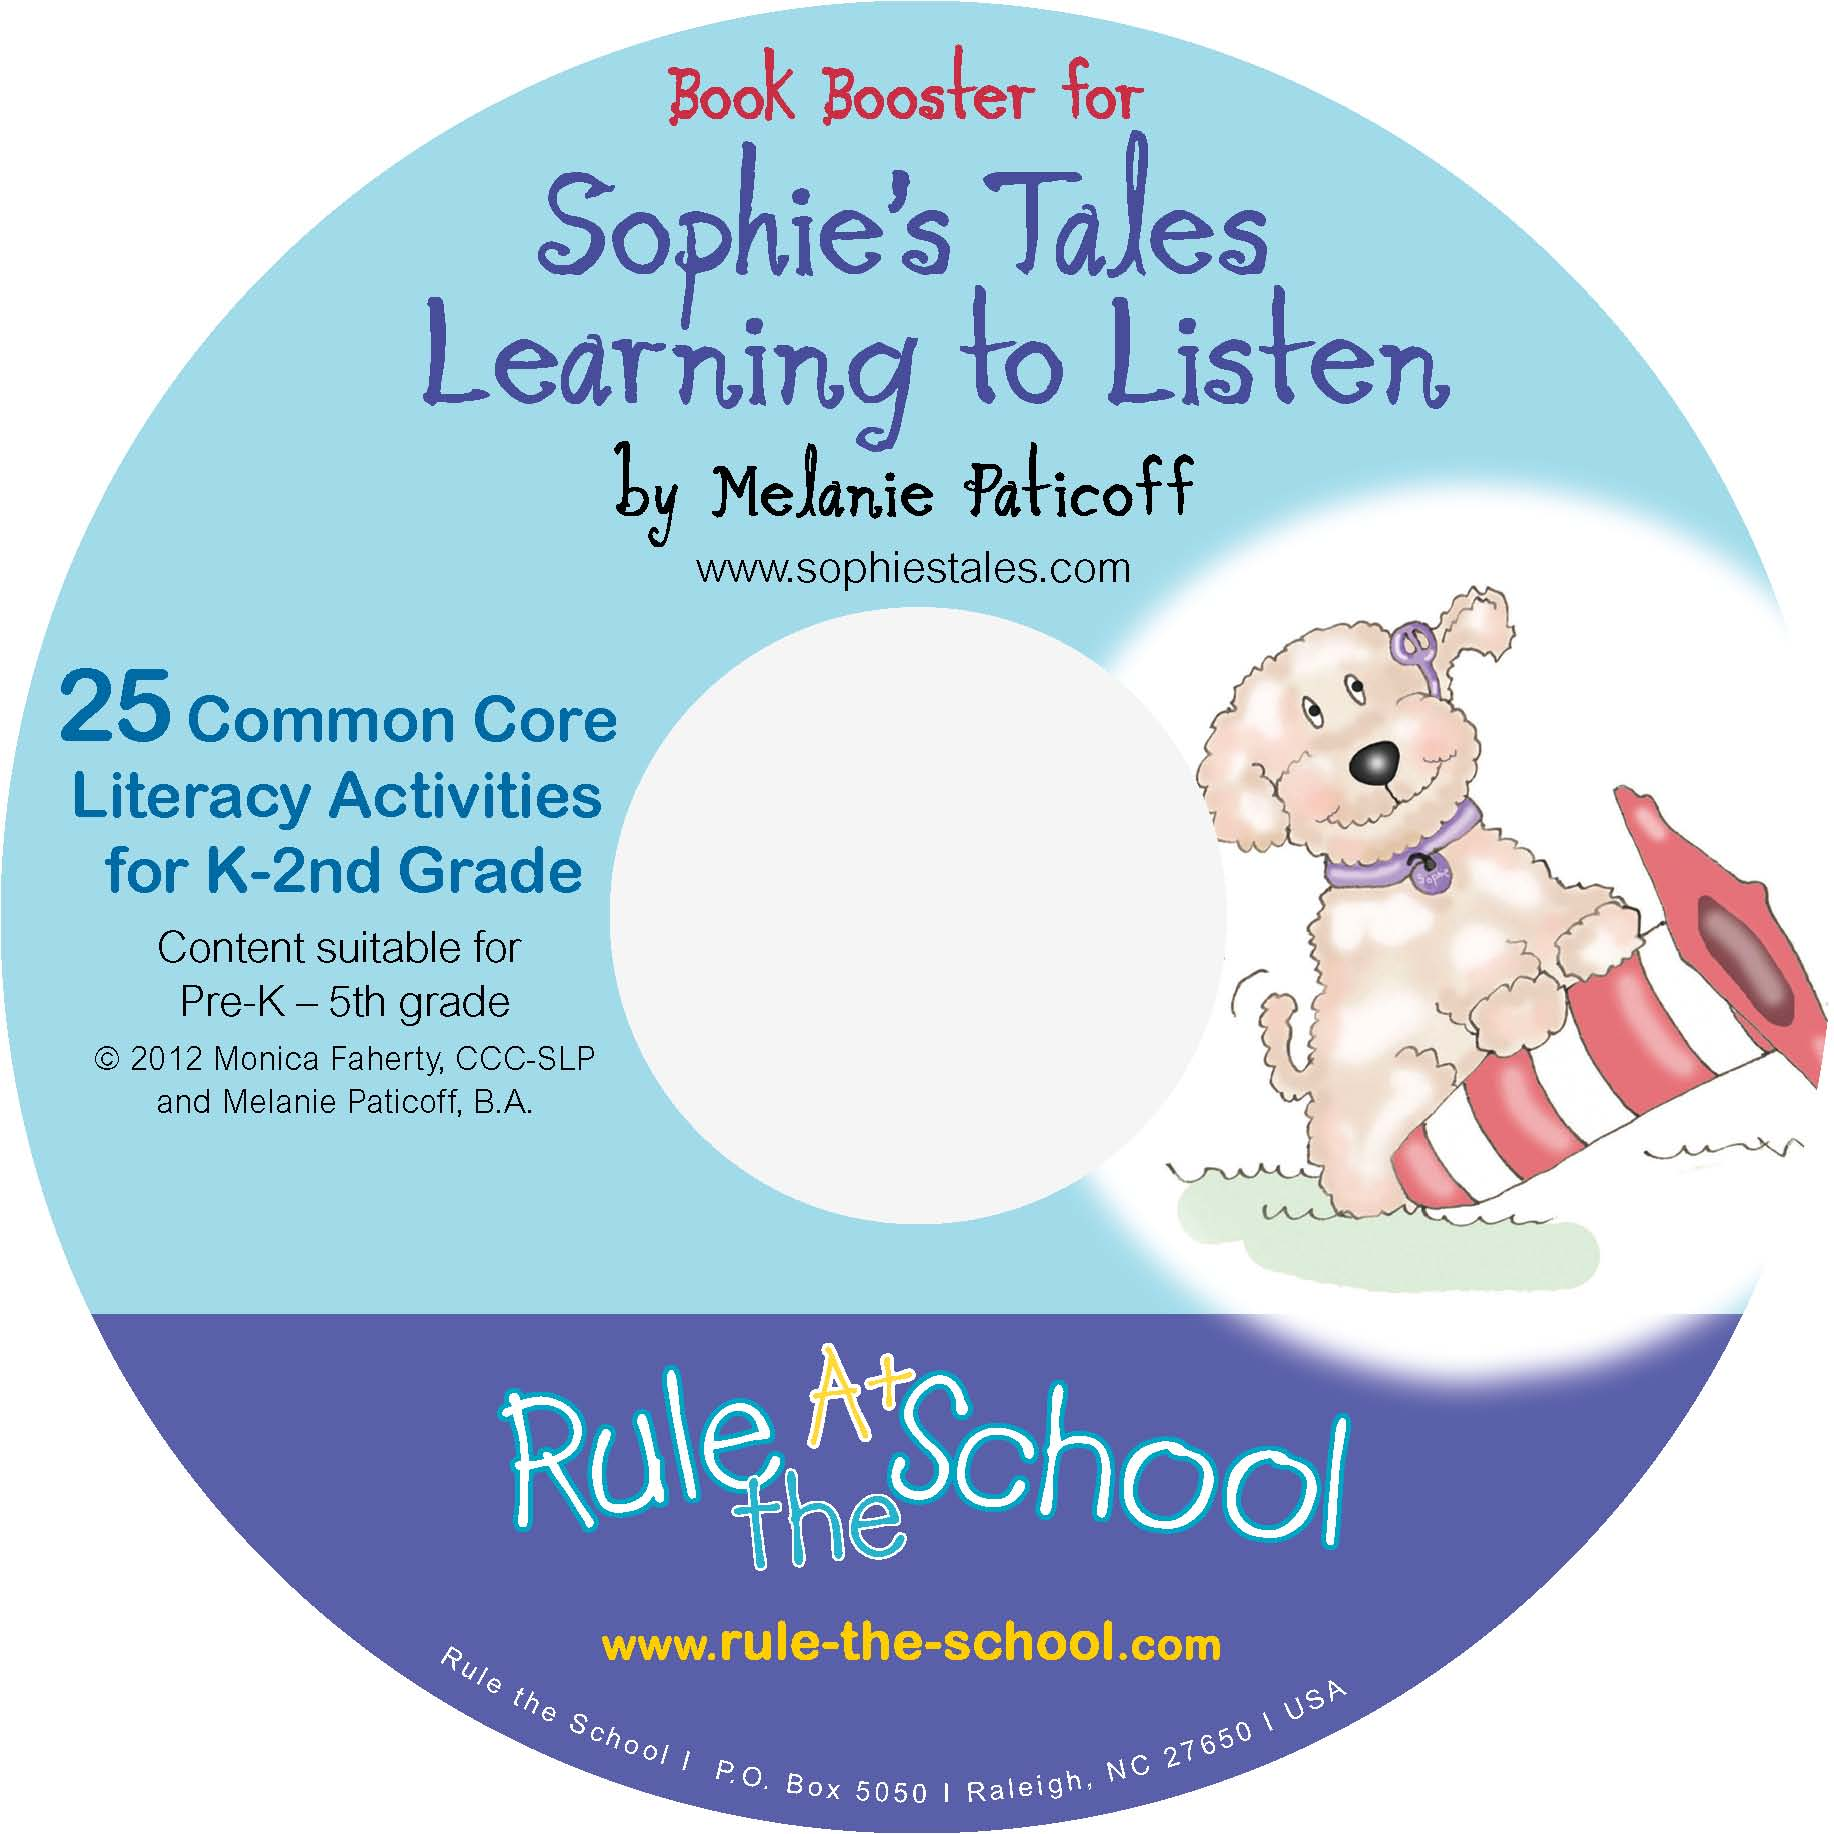 Book Booster for Sophie's Tales - Language and literacy integrated with self-advocacy